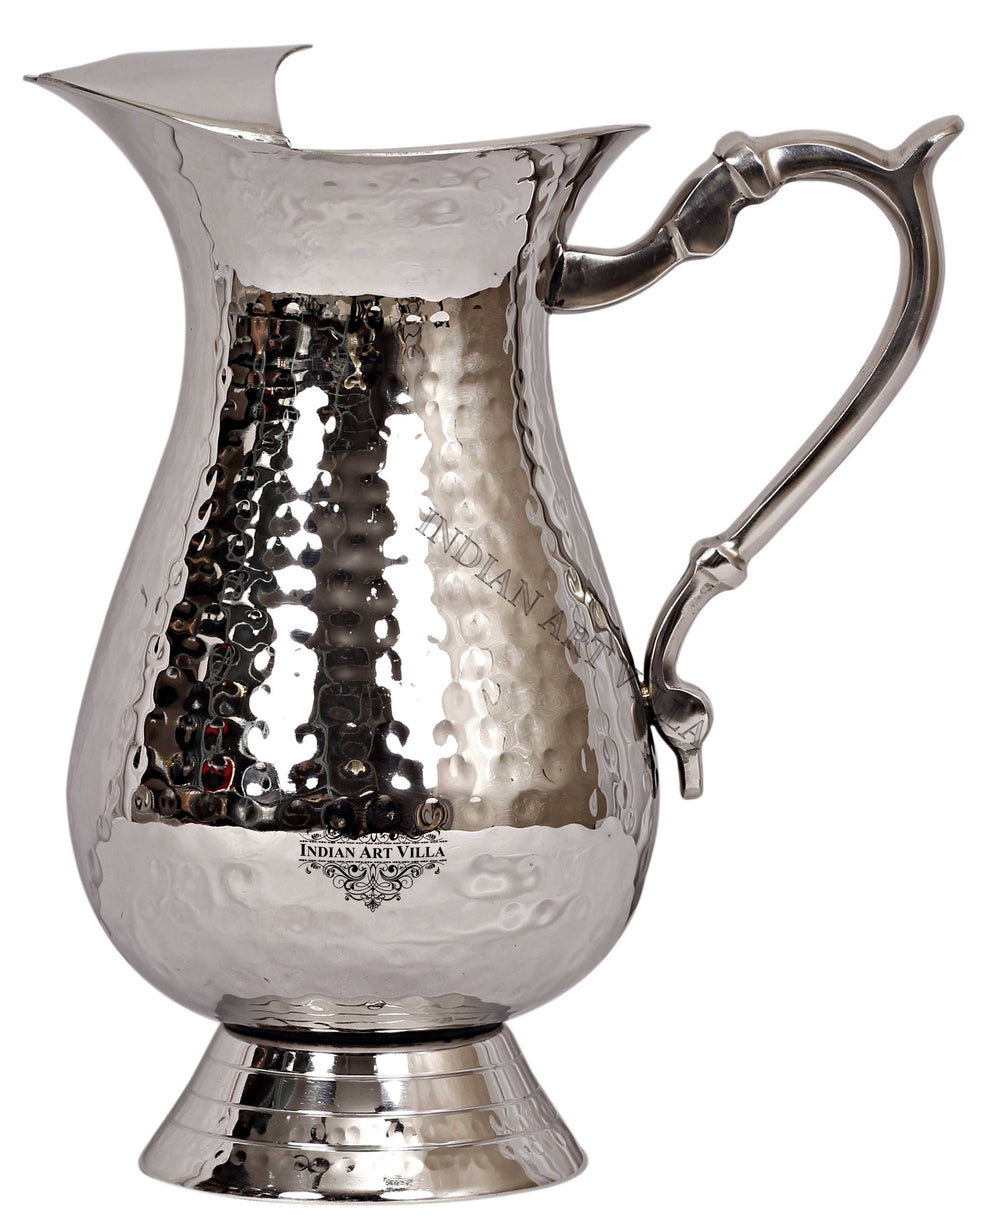 Steel Hammered Jug 50.72 Oz Steel Jugs SS-3